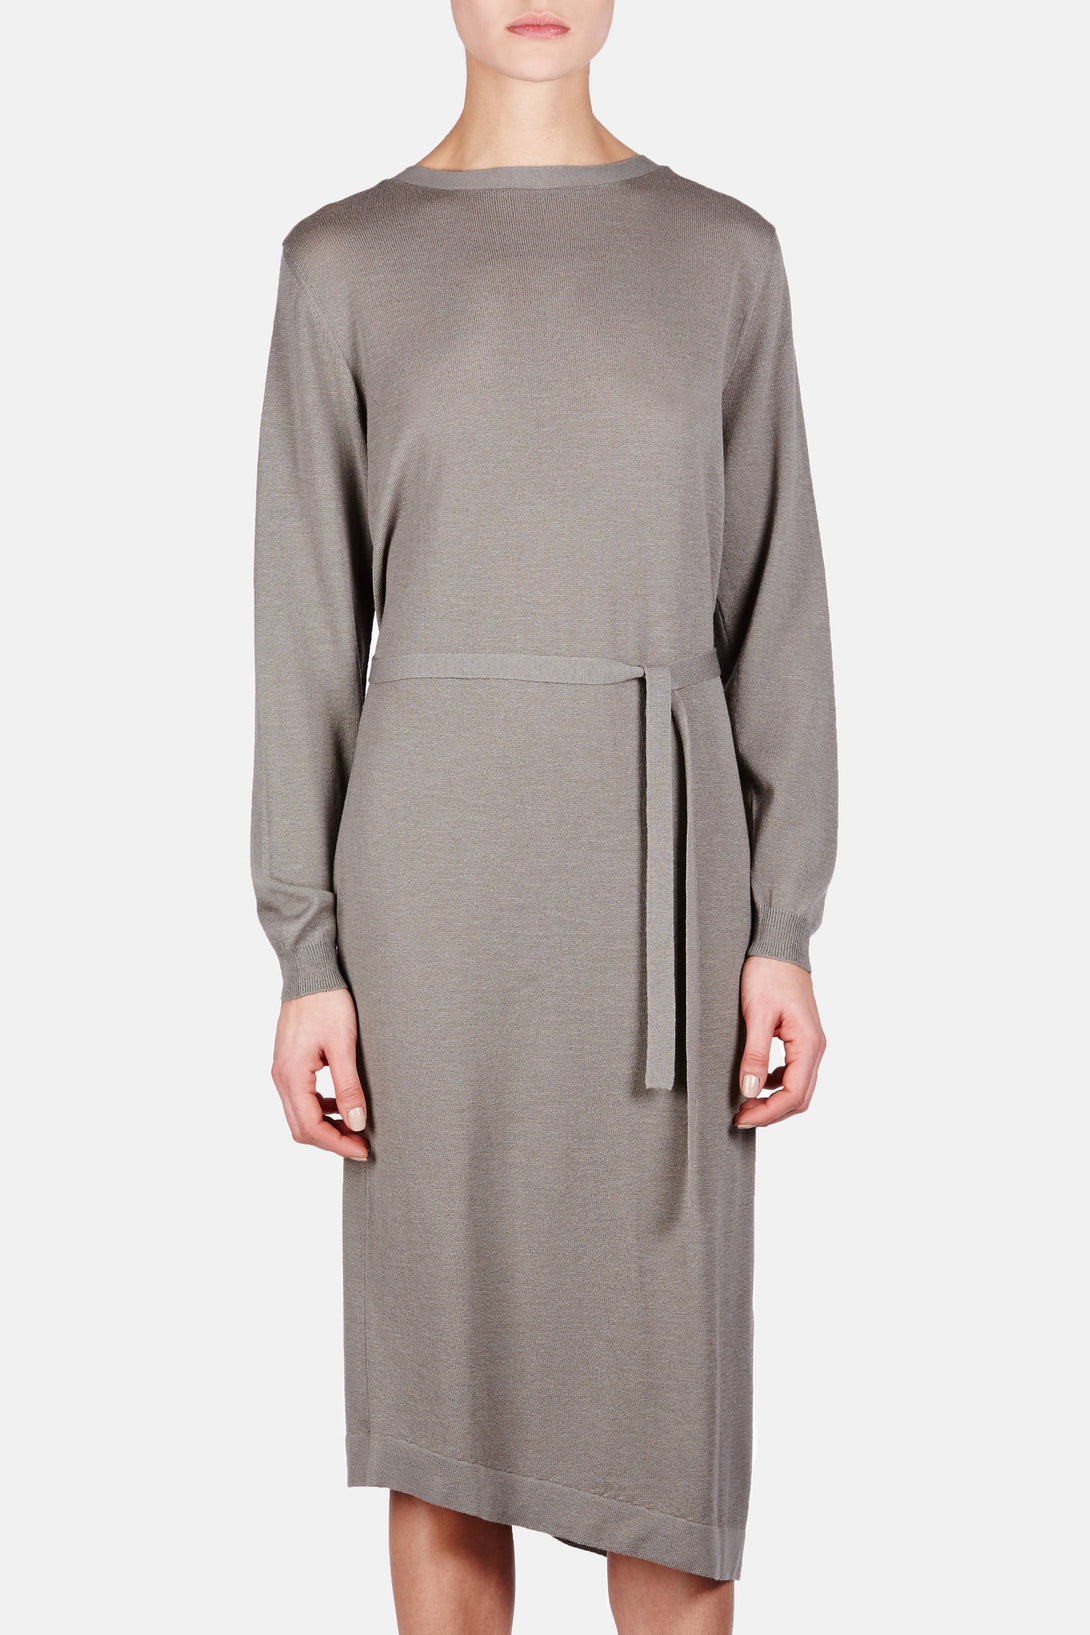 Asymmetrical Dress - Olive Grey